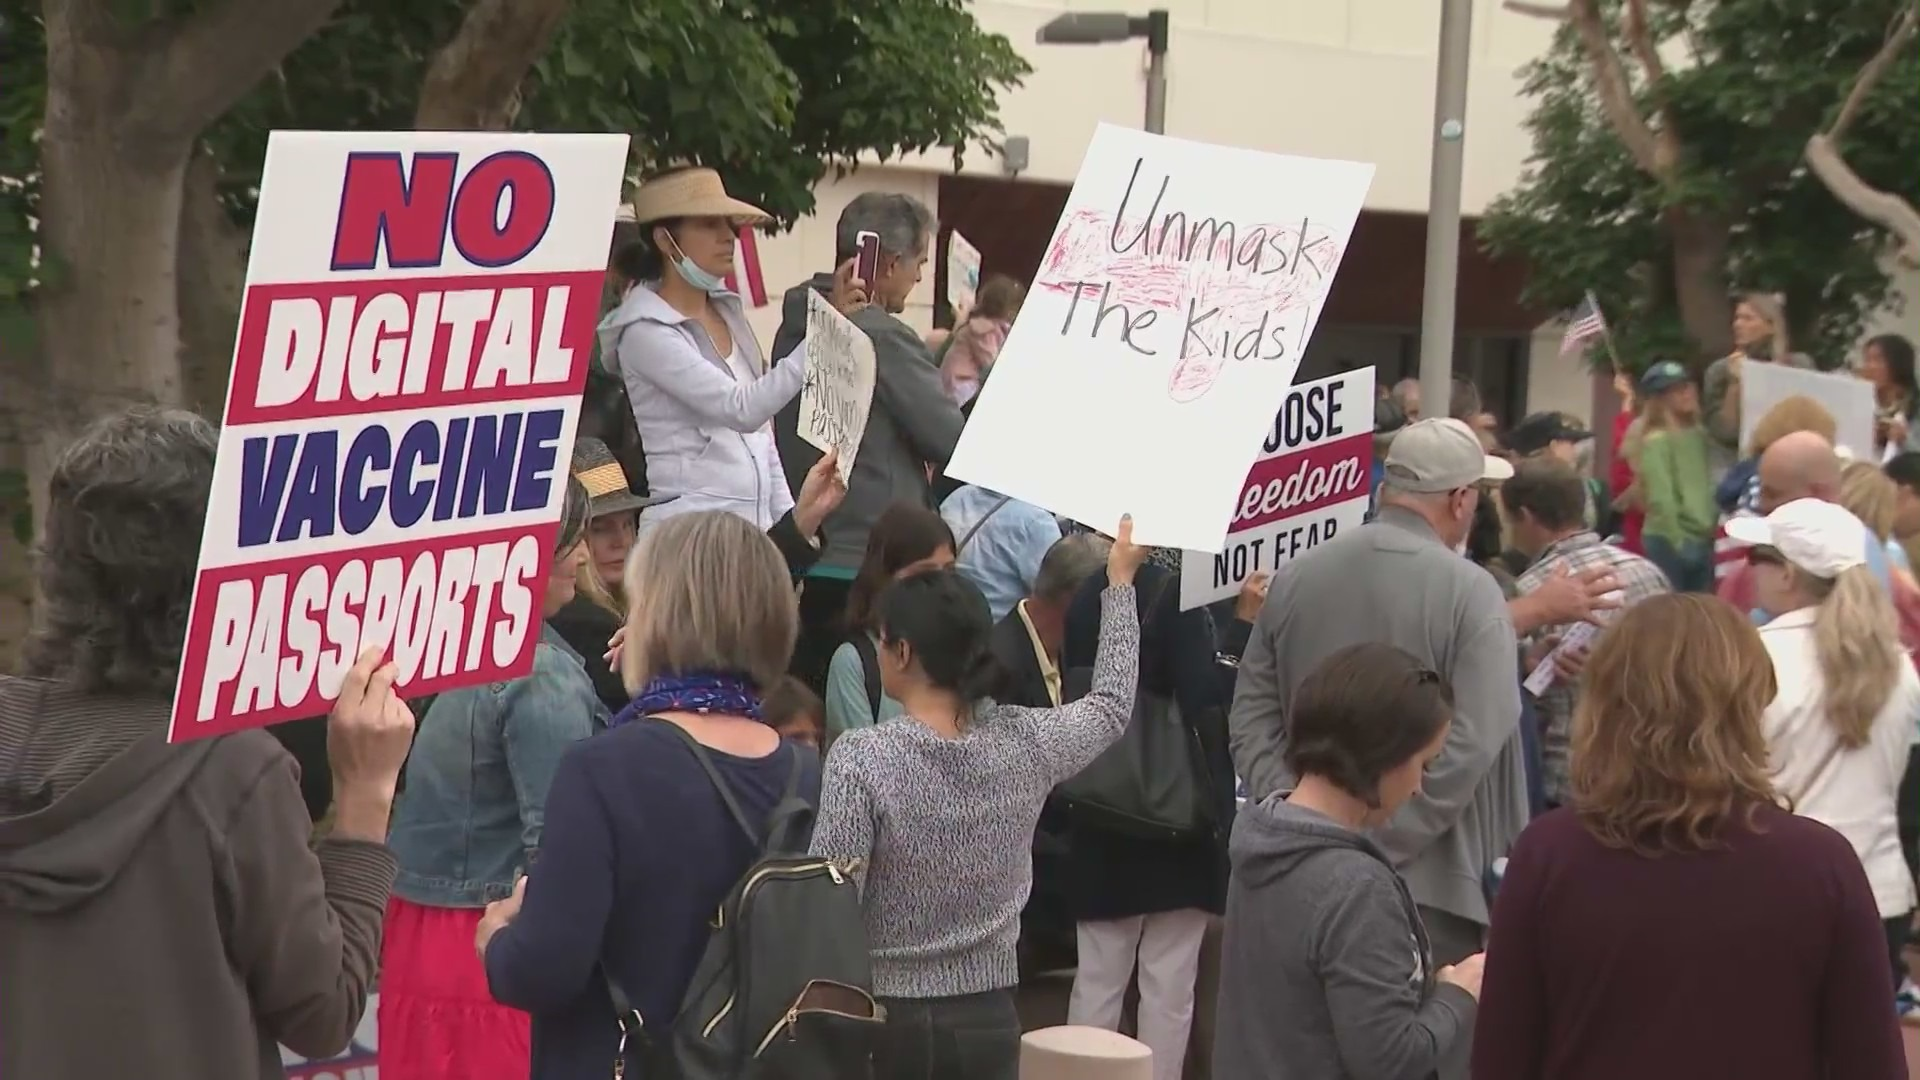 A group protests against digital vaccine records in Orange Coounty on May 11, 2021. (KTLA)